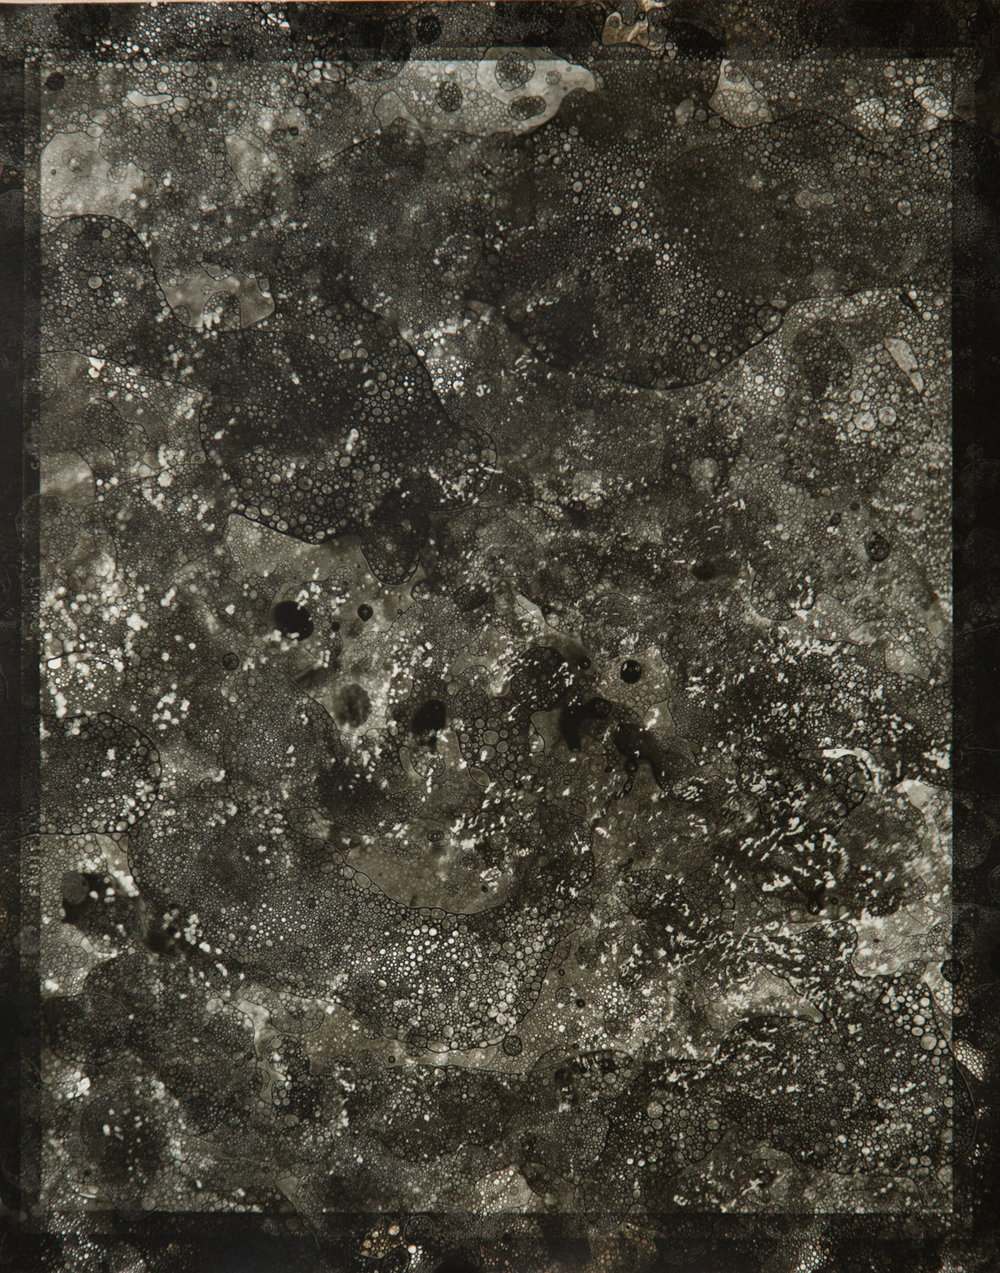 Ocean Abstraction 5.26.2016, Unique Silver Gelatin Print, 14 x 11 inches